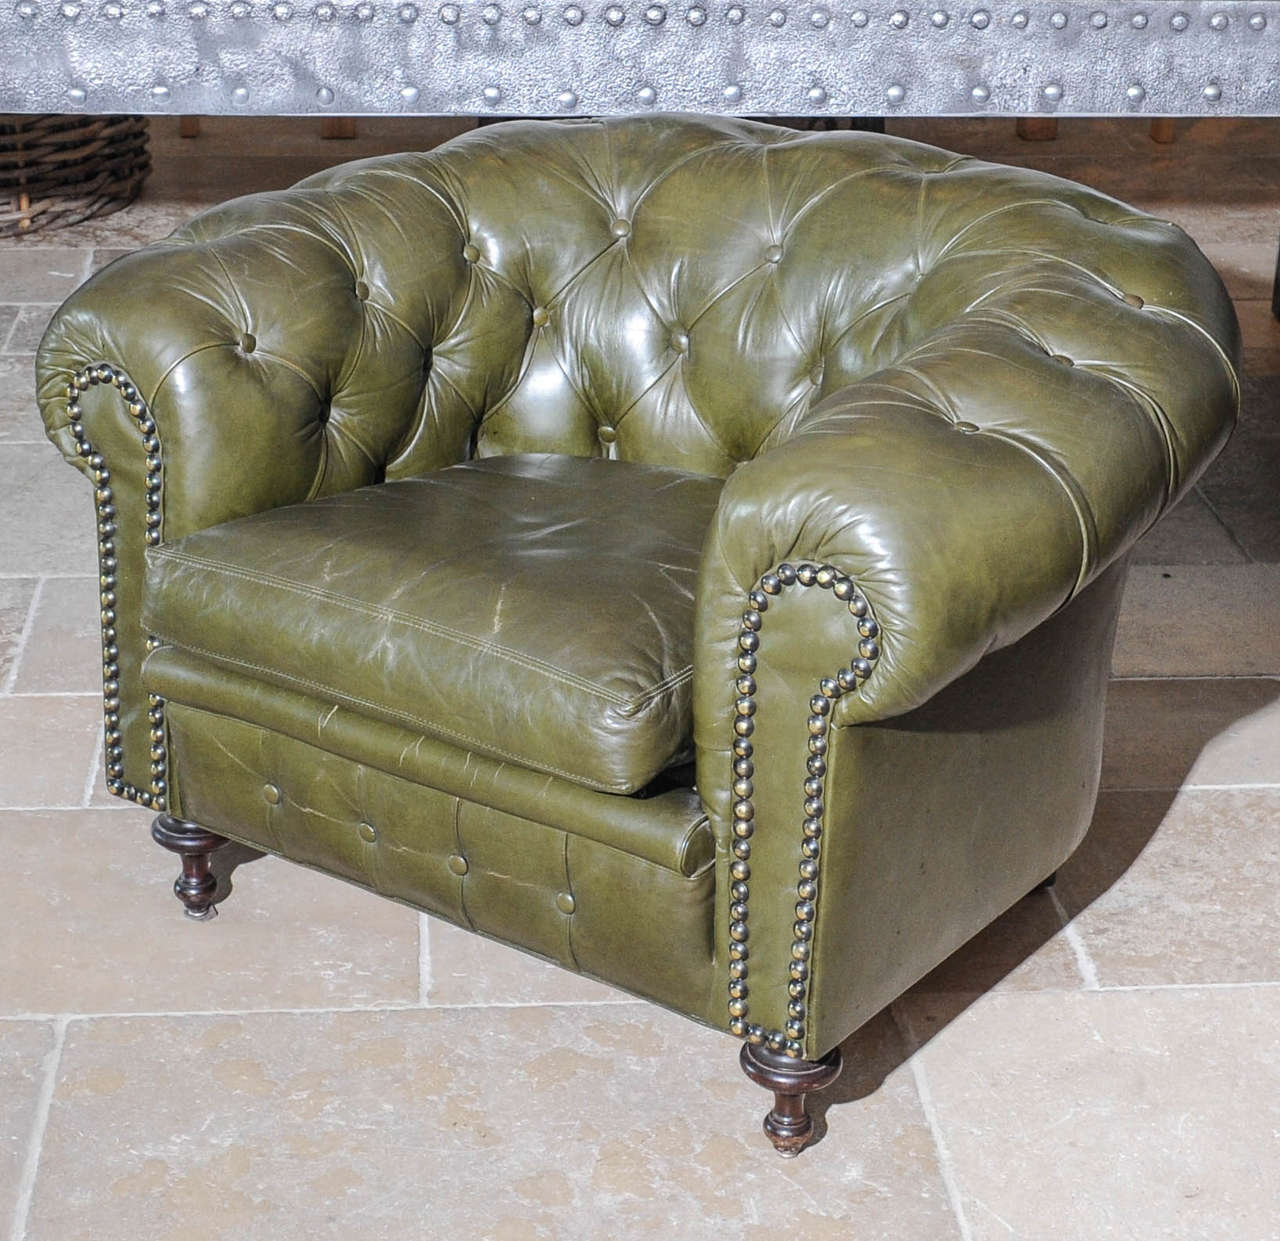 Delicieux Pair Of Mid 20th Century Green Leather Upholstered Chesterfield Club Chairs  For Sale 5